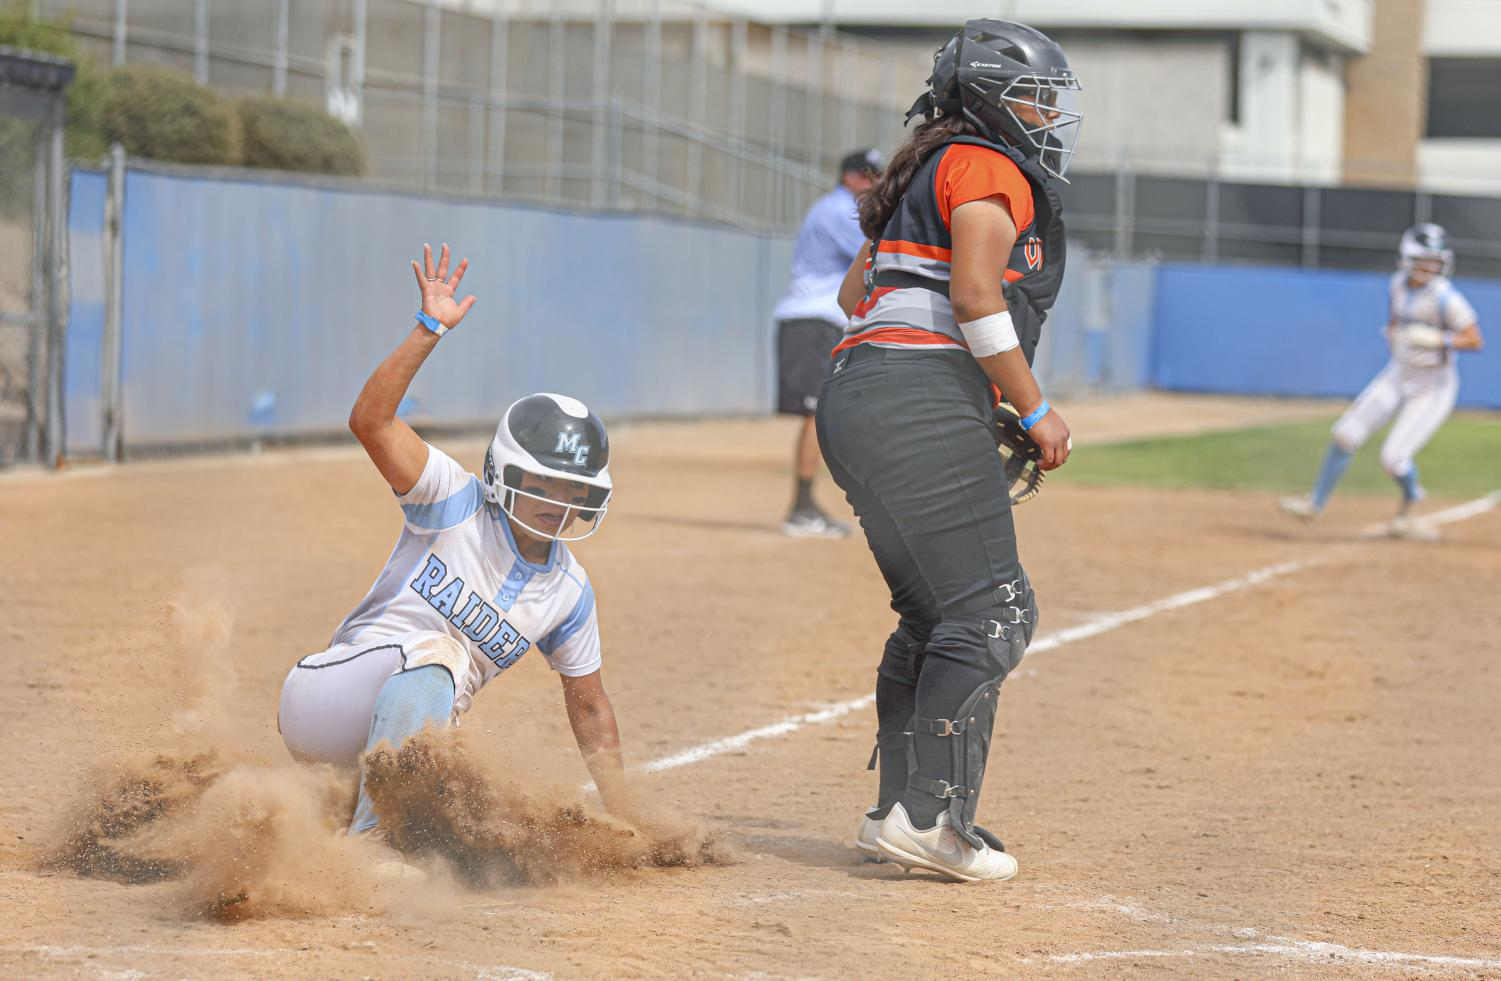 Moorpark Raider __________ slides into home plate, scoring a run for the Raiders during the home game against Ventura College on Saturday, May 1, 2021 in Moorpark, CA.